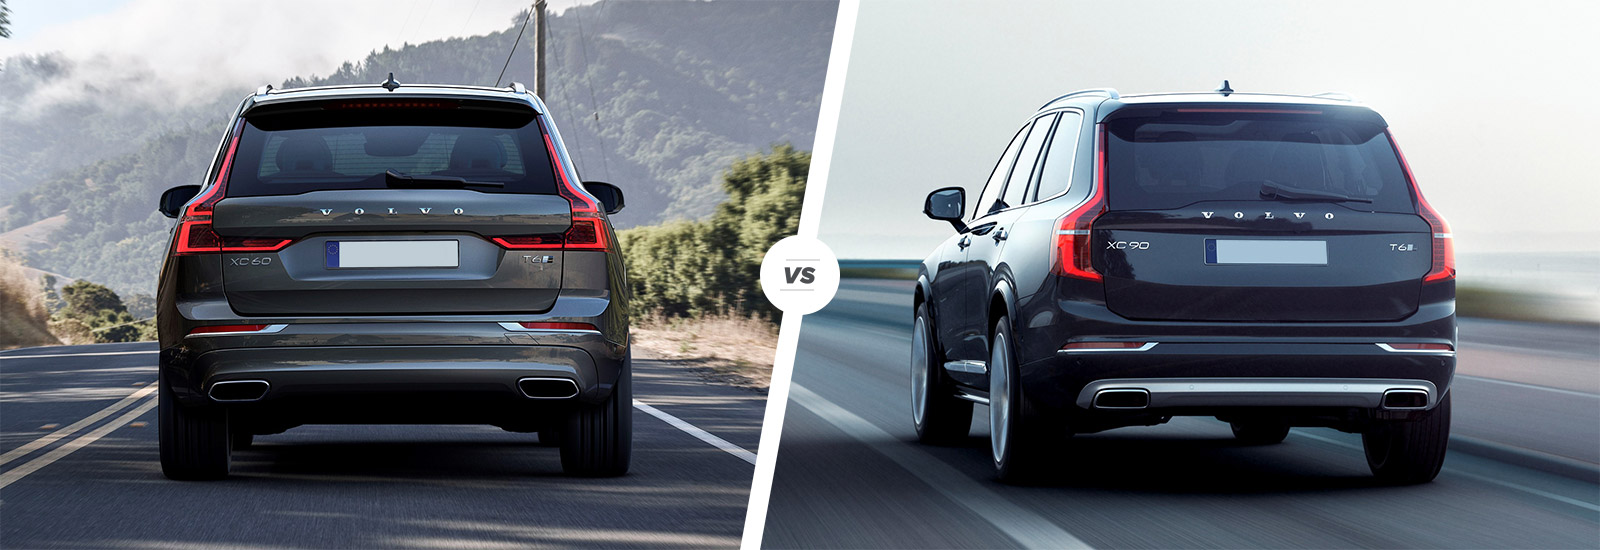 hight resolution of volvo xc60 vs volvo xc90 verdict